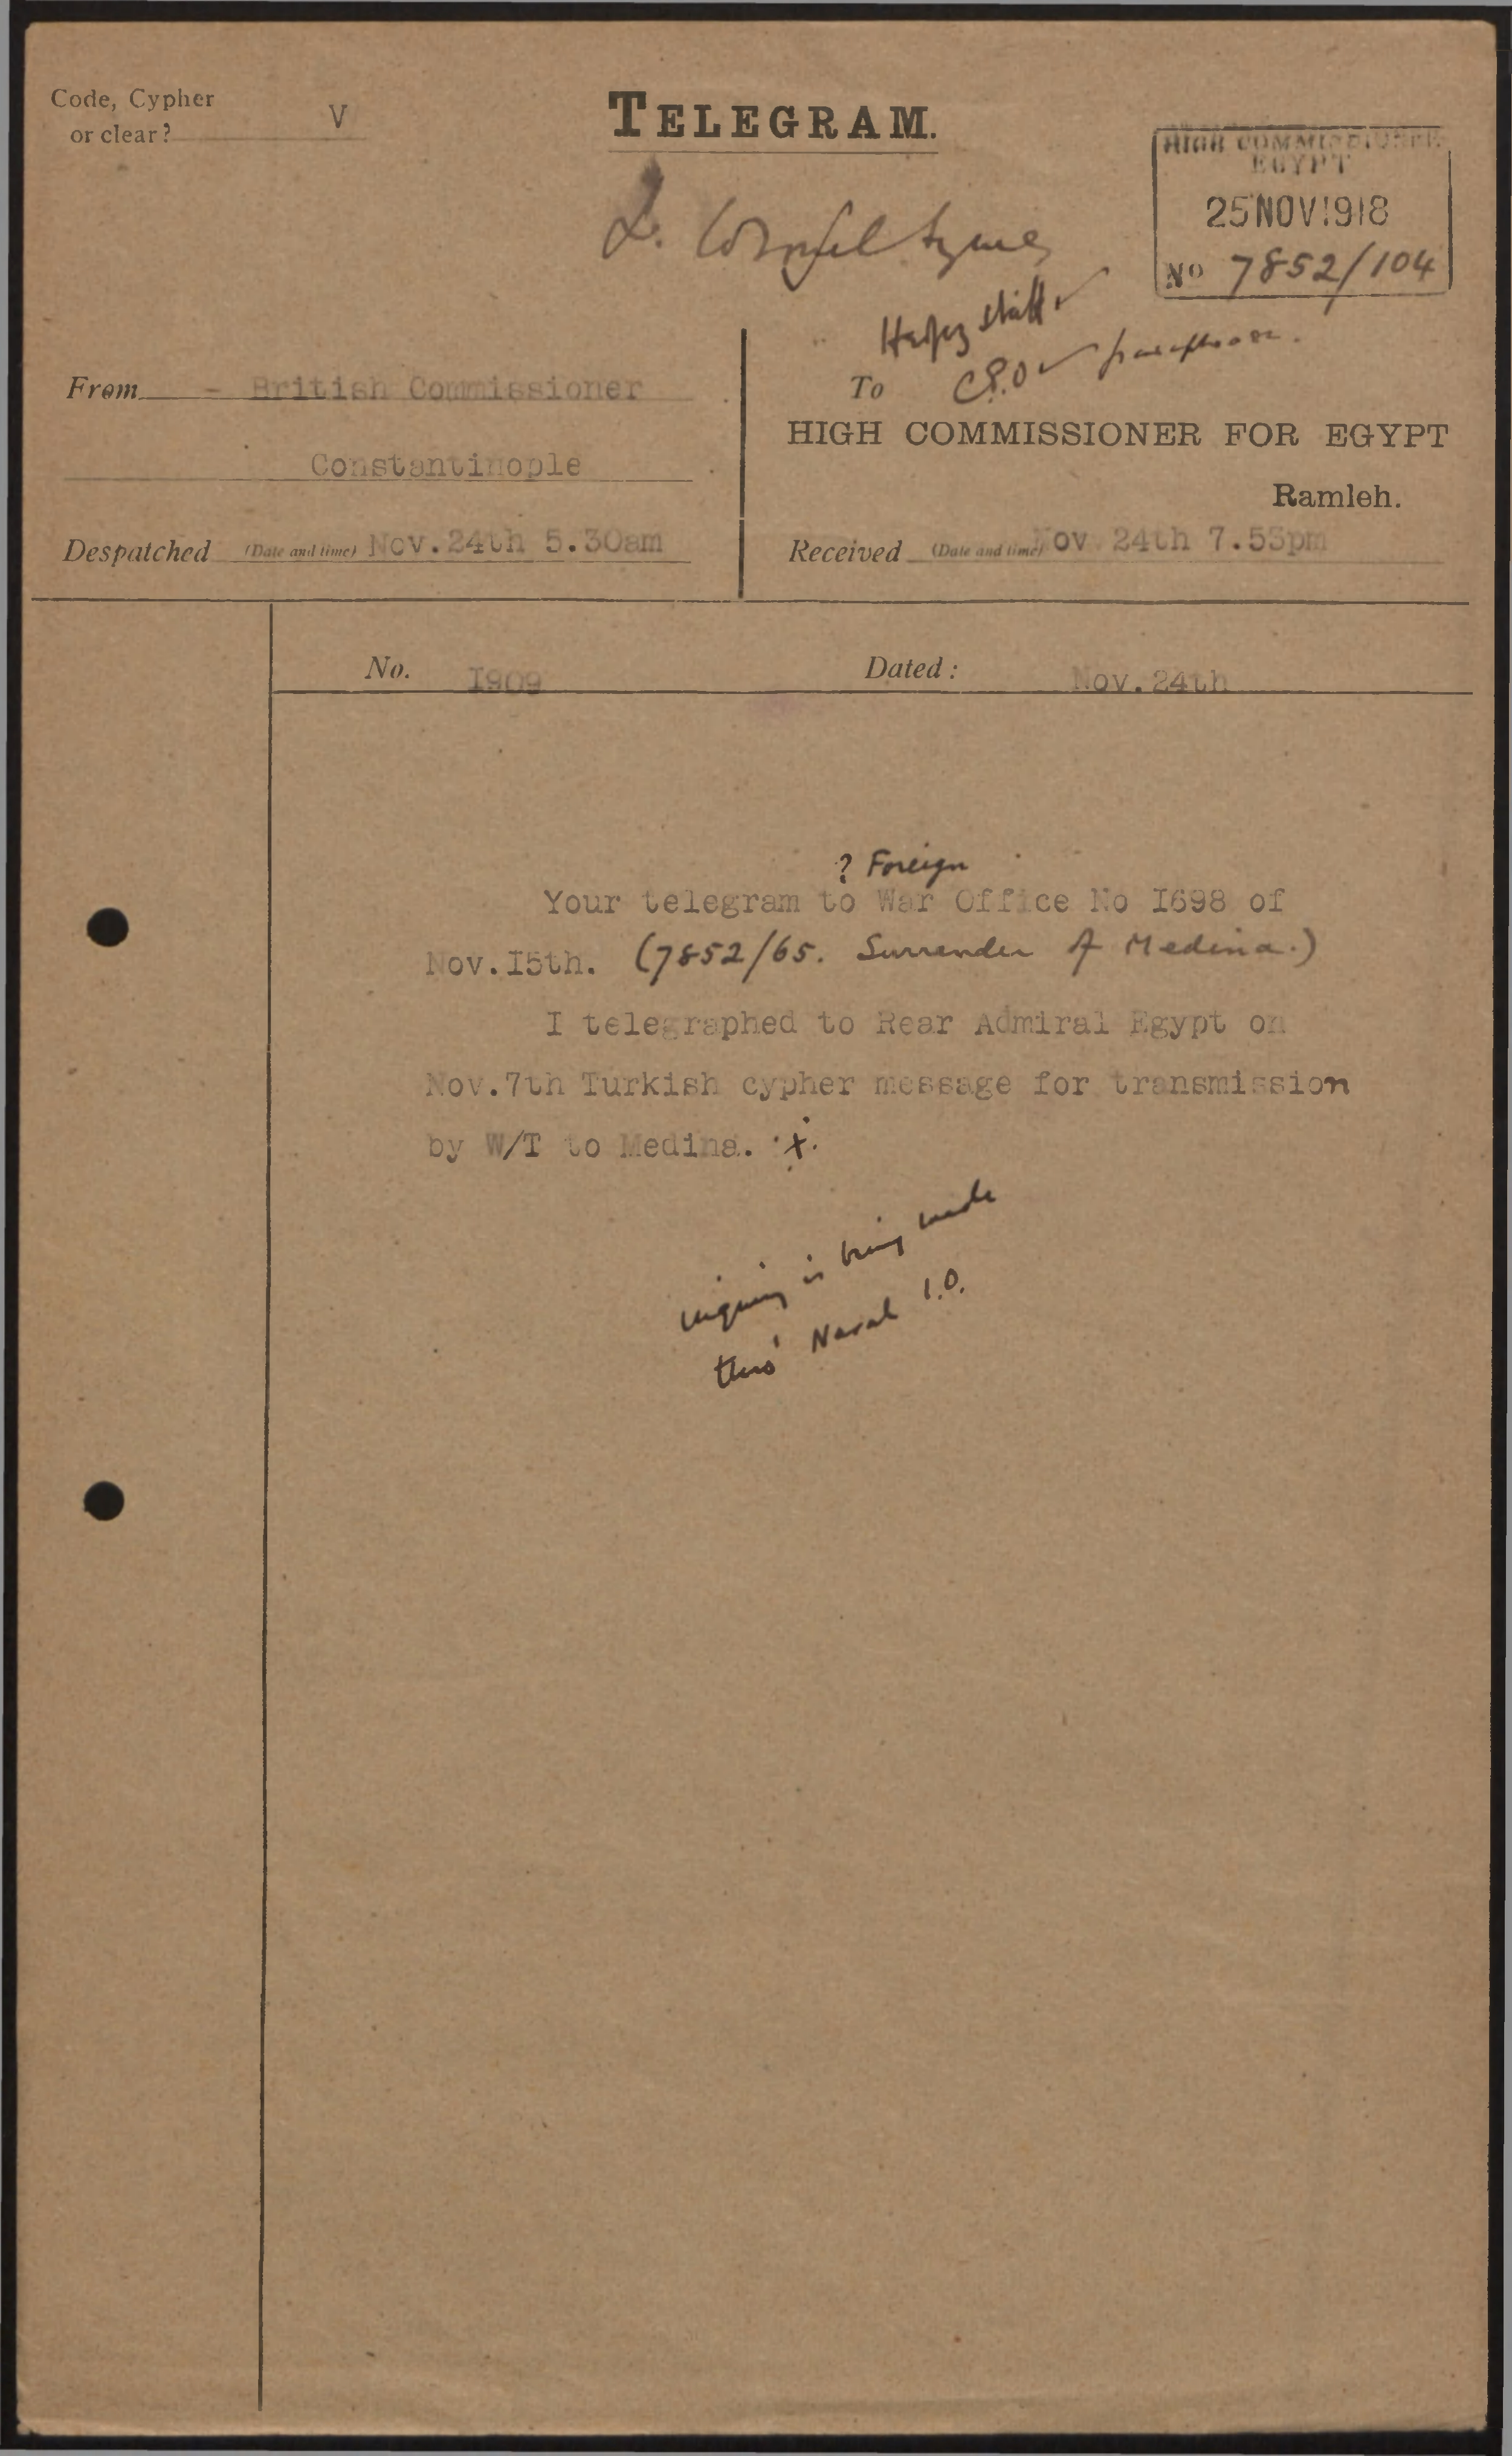 Telegram from British Commissioner, Constantinople to High